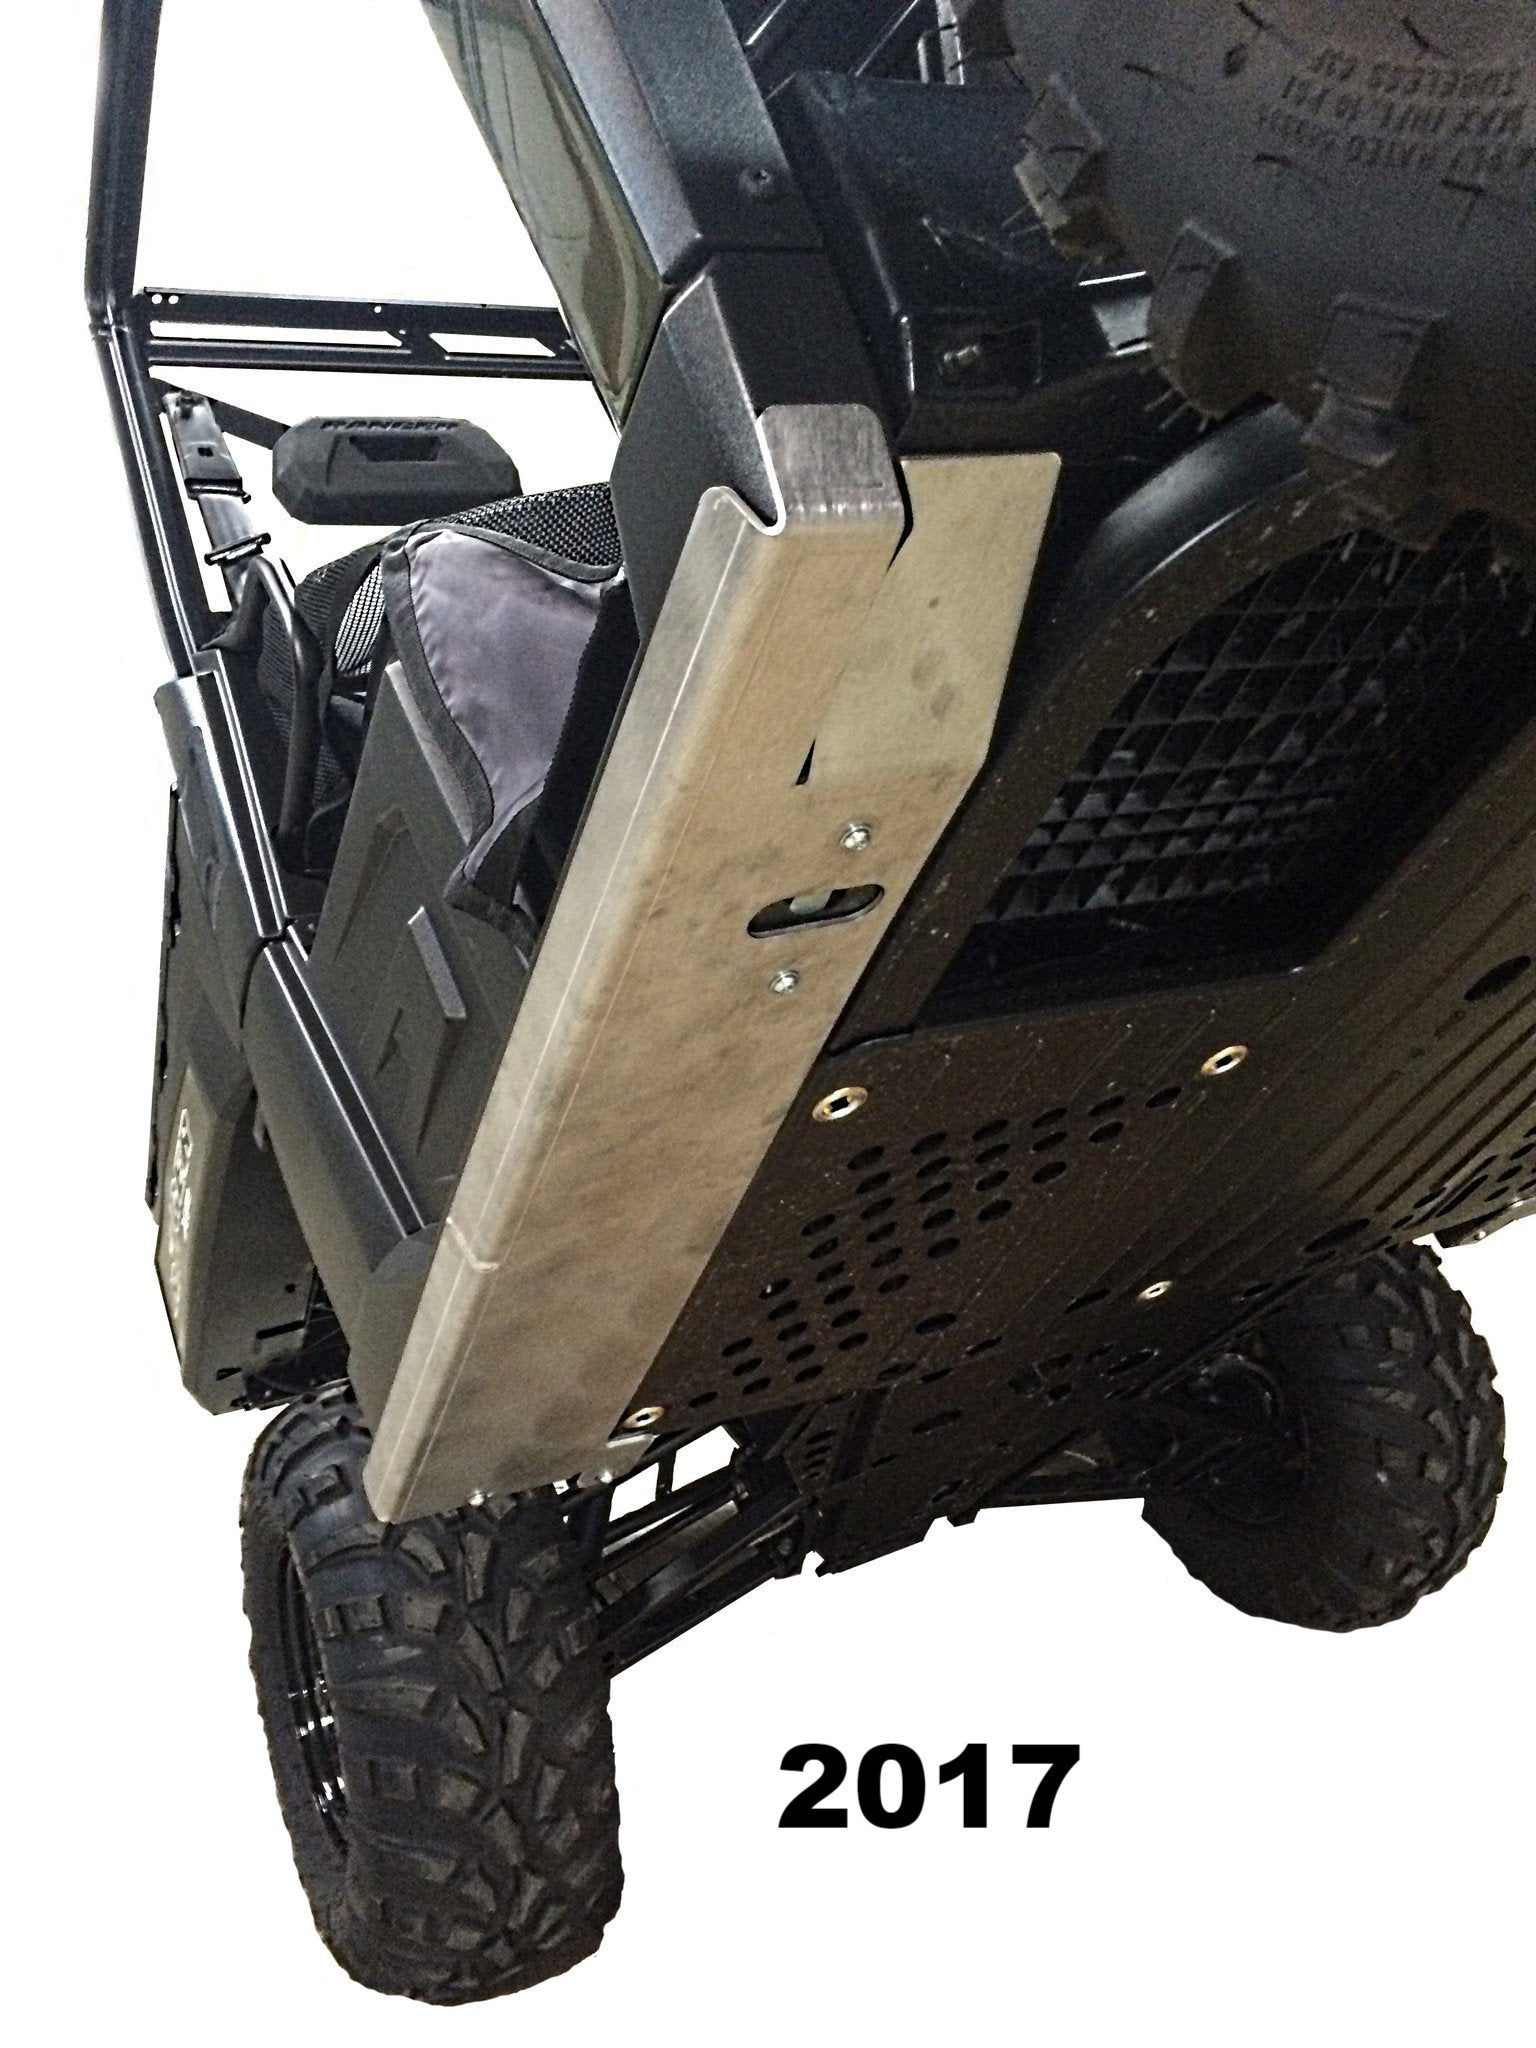 2-Piece Aluminum Rock Slider Set, Polaris Ranger XP 1000